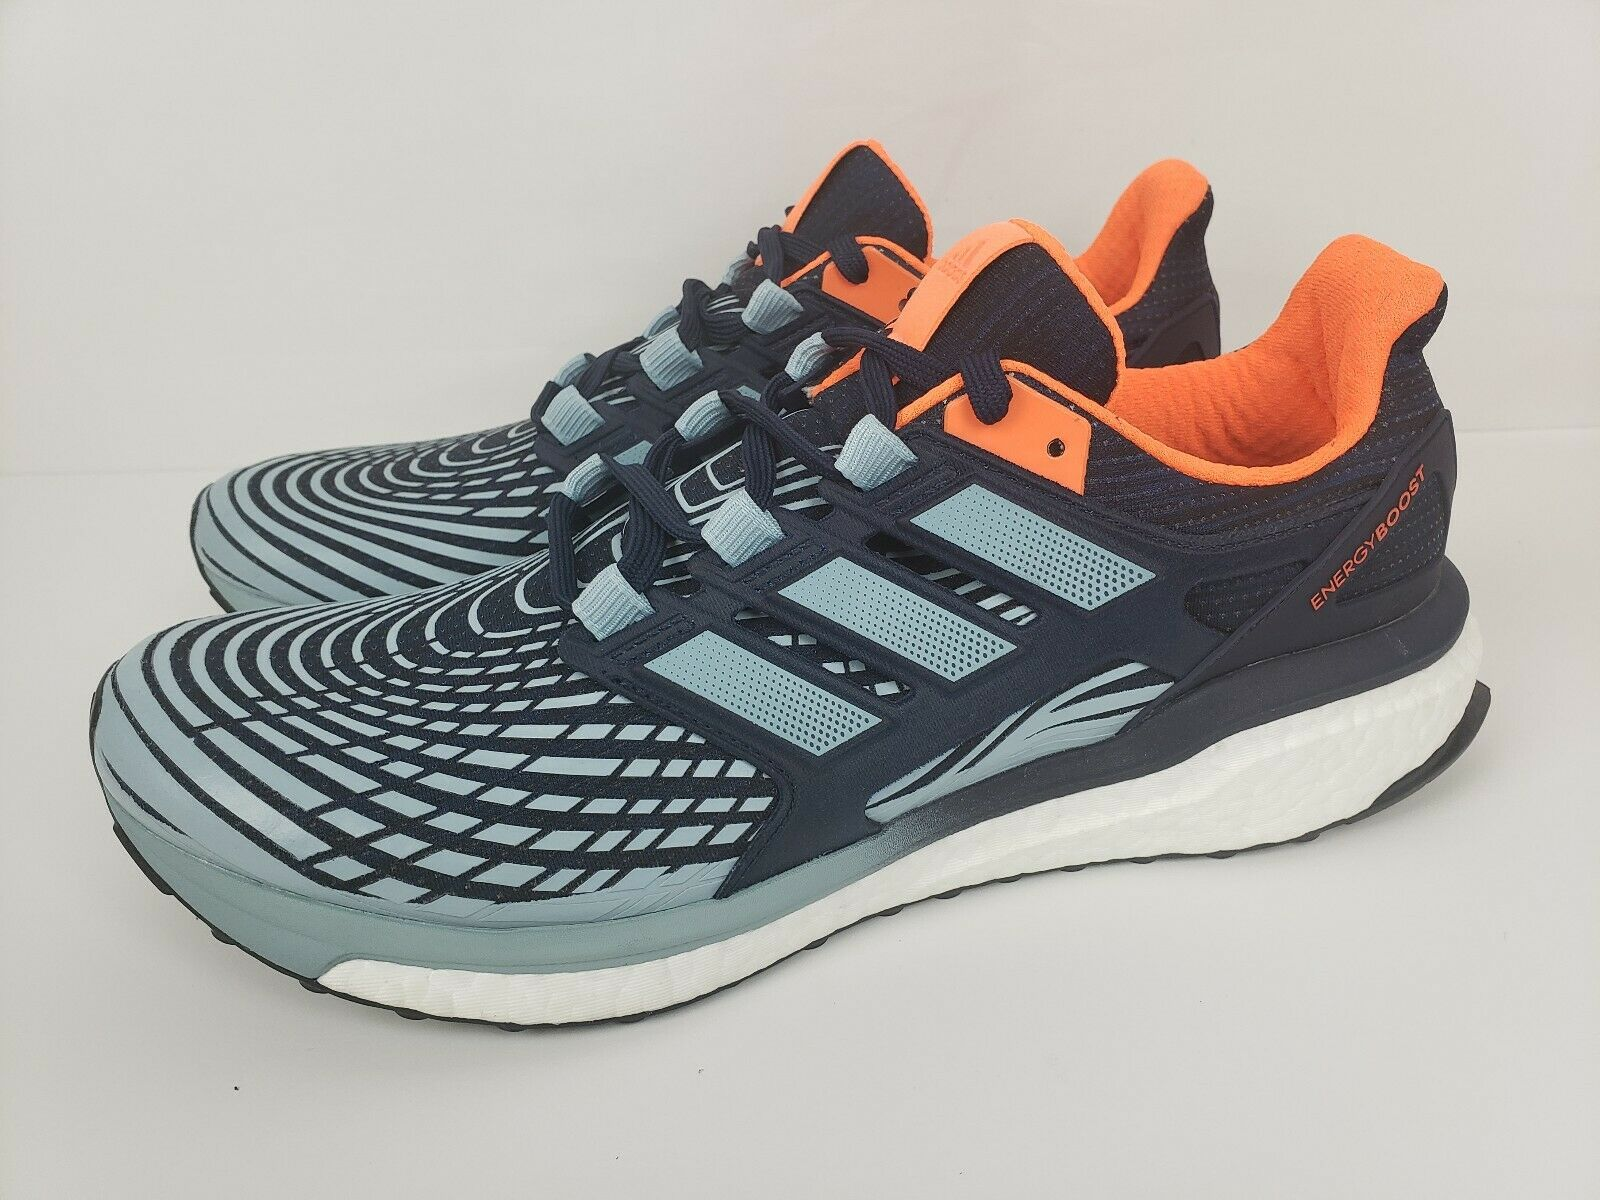 27cee40629877 Adidas Energy Boost 2.0 Running shoes Men s Men s Men s Noble bluee White  CP9540 Size 11.5 e77680